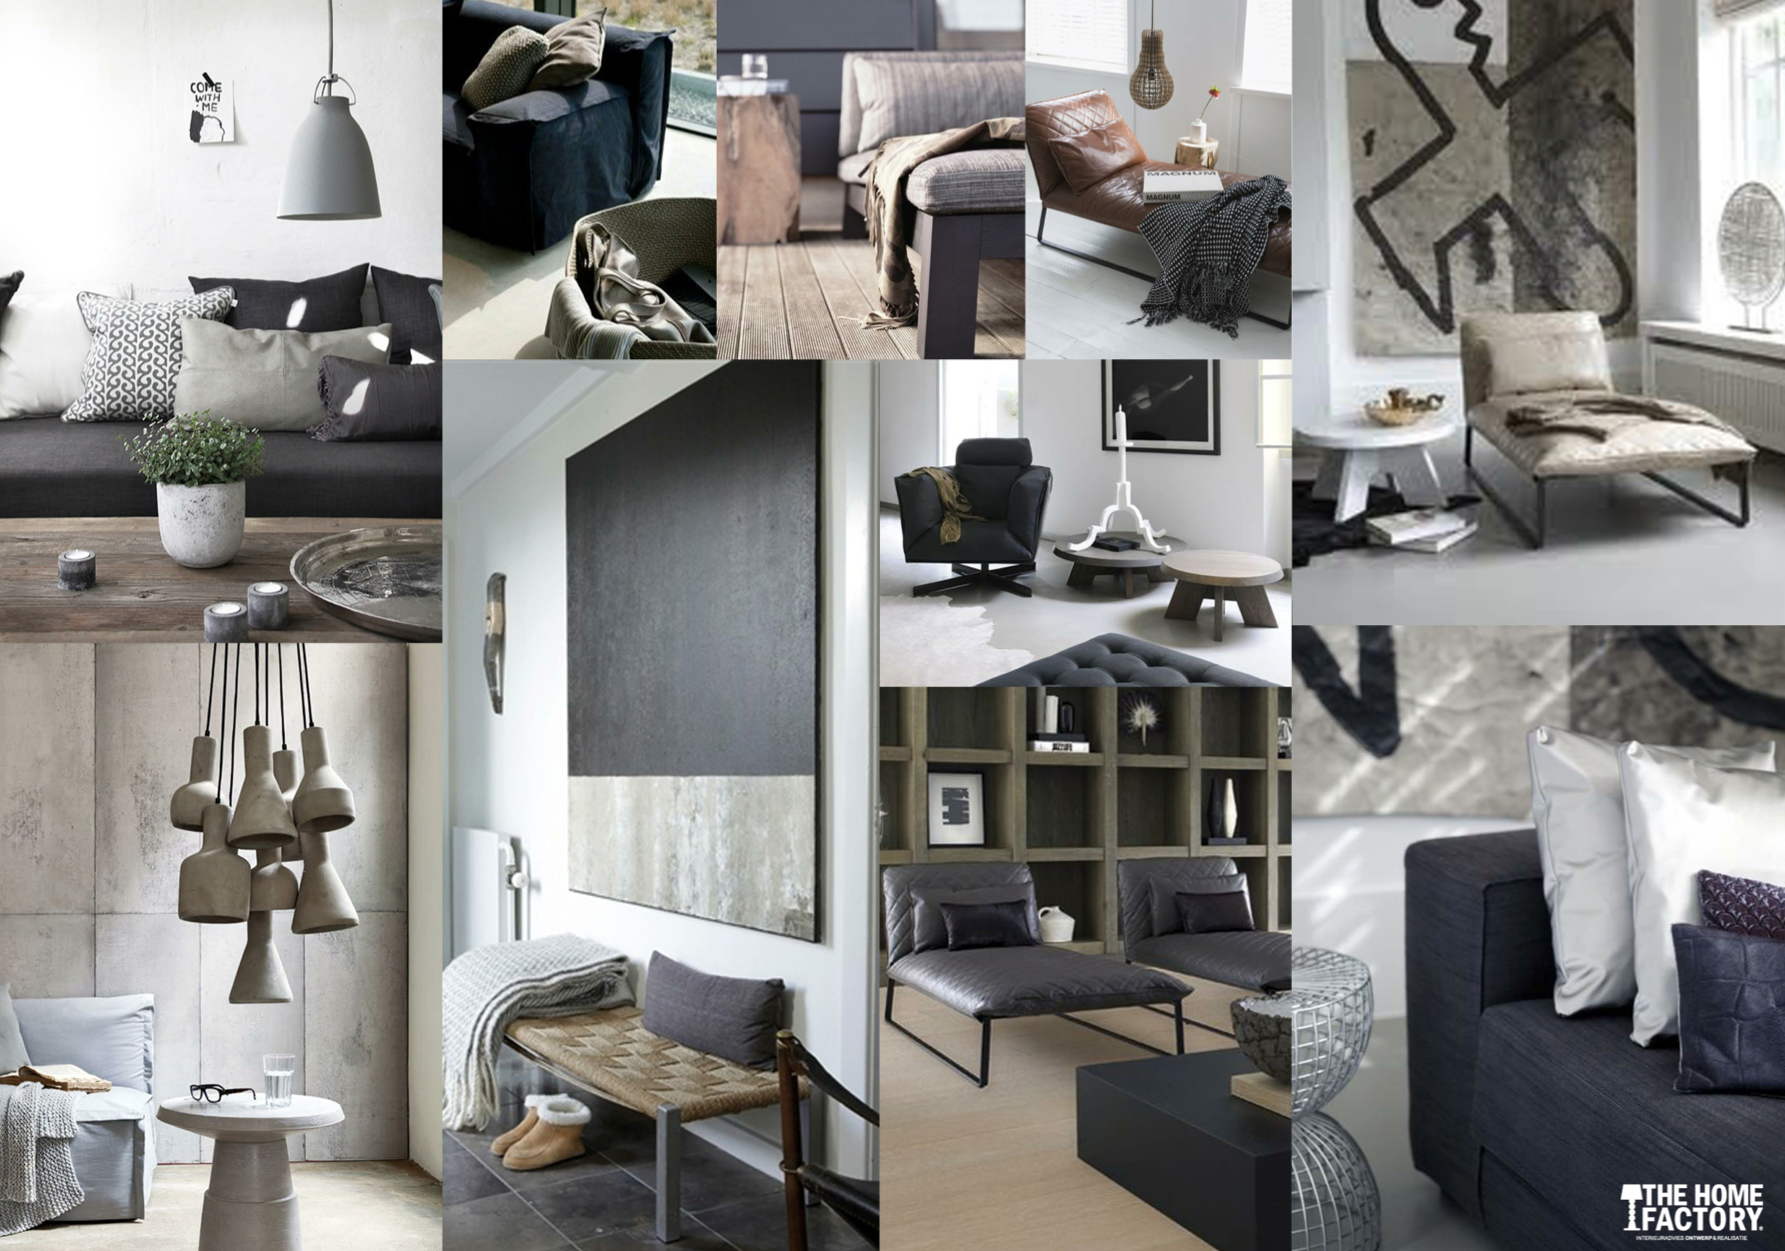 Interieur Modern Industrieel Modern Interieur Interieur Collages Interieur Modern